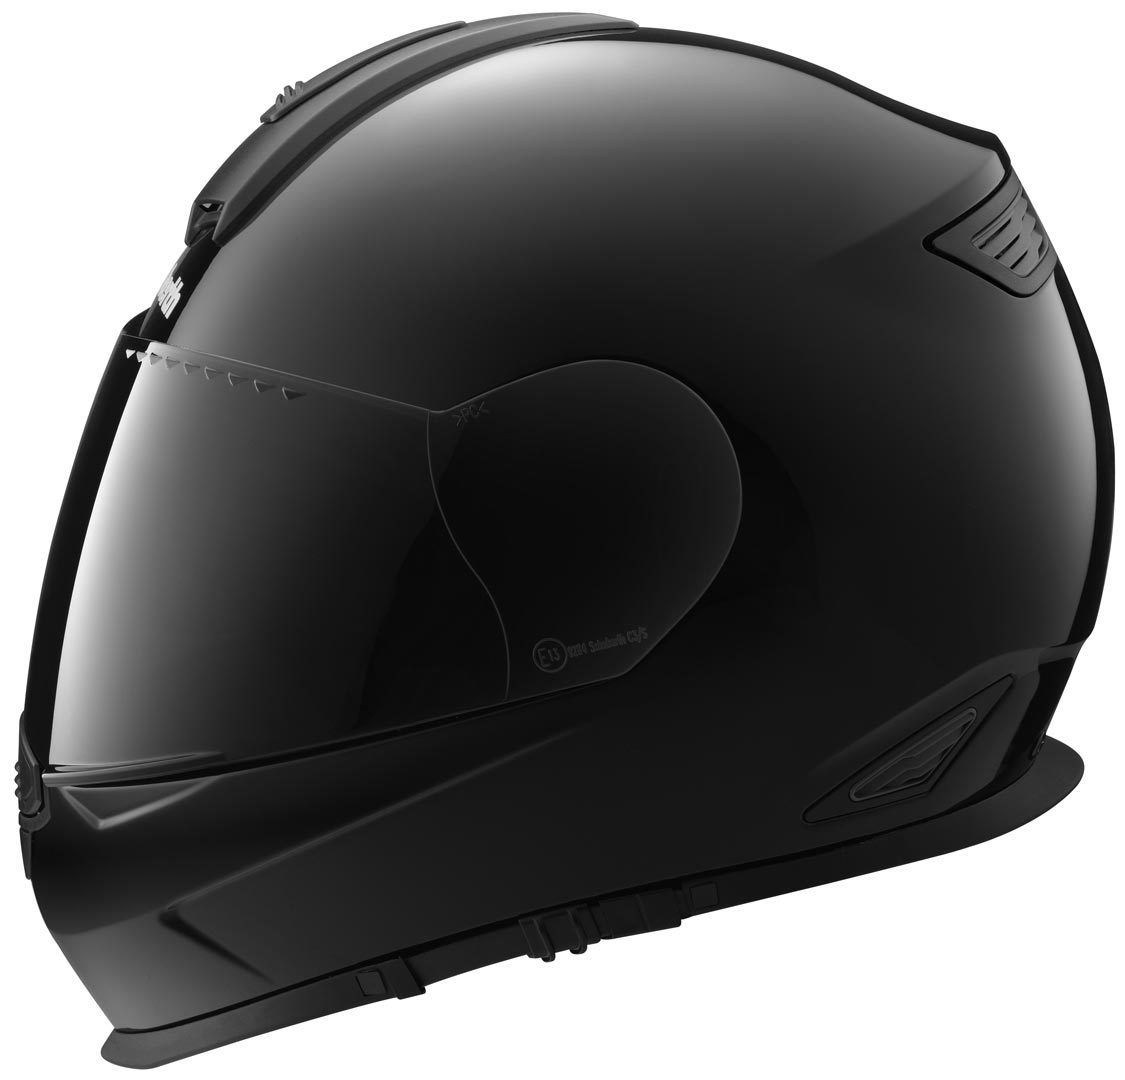 neu schuberth motorradhelm s2 sport schwarz gr l 58 59 helm mit sonnenblende ebay. Black Bedroom Furniture Sets. Home Design Ideas